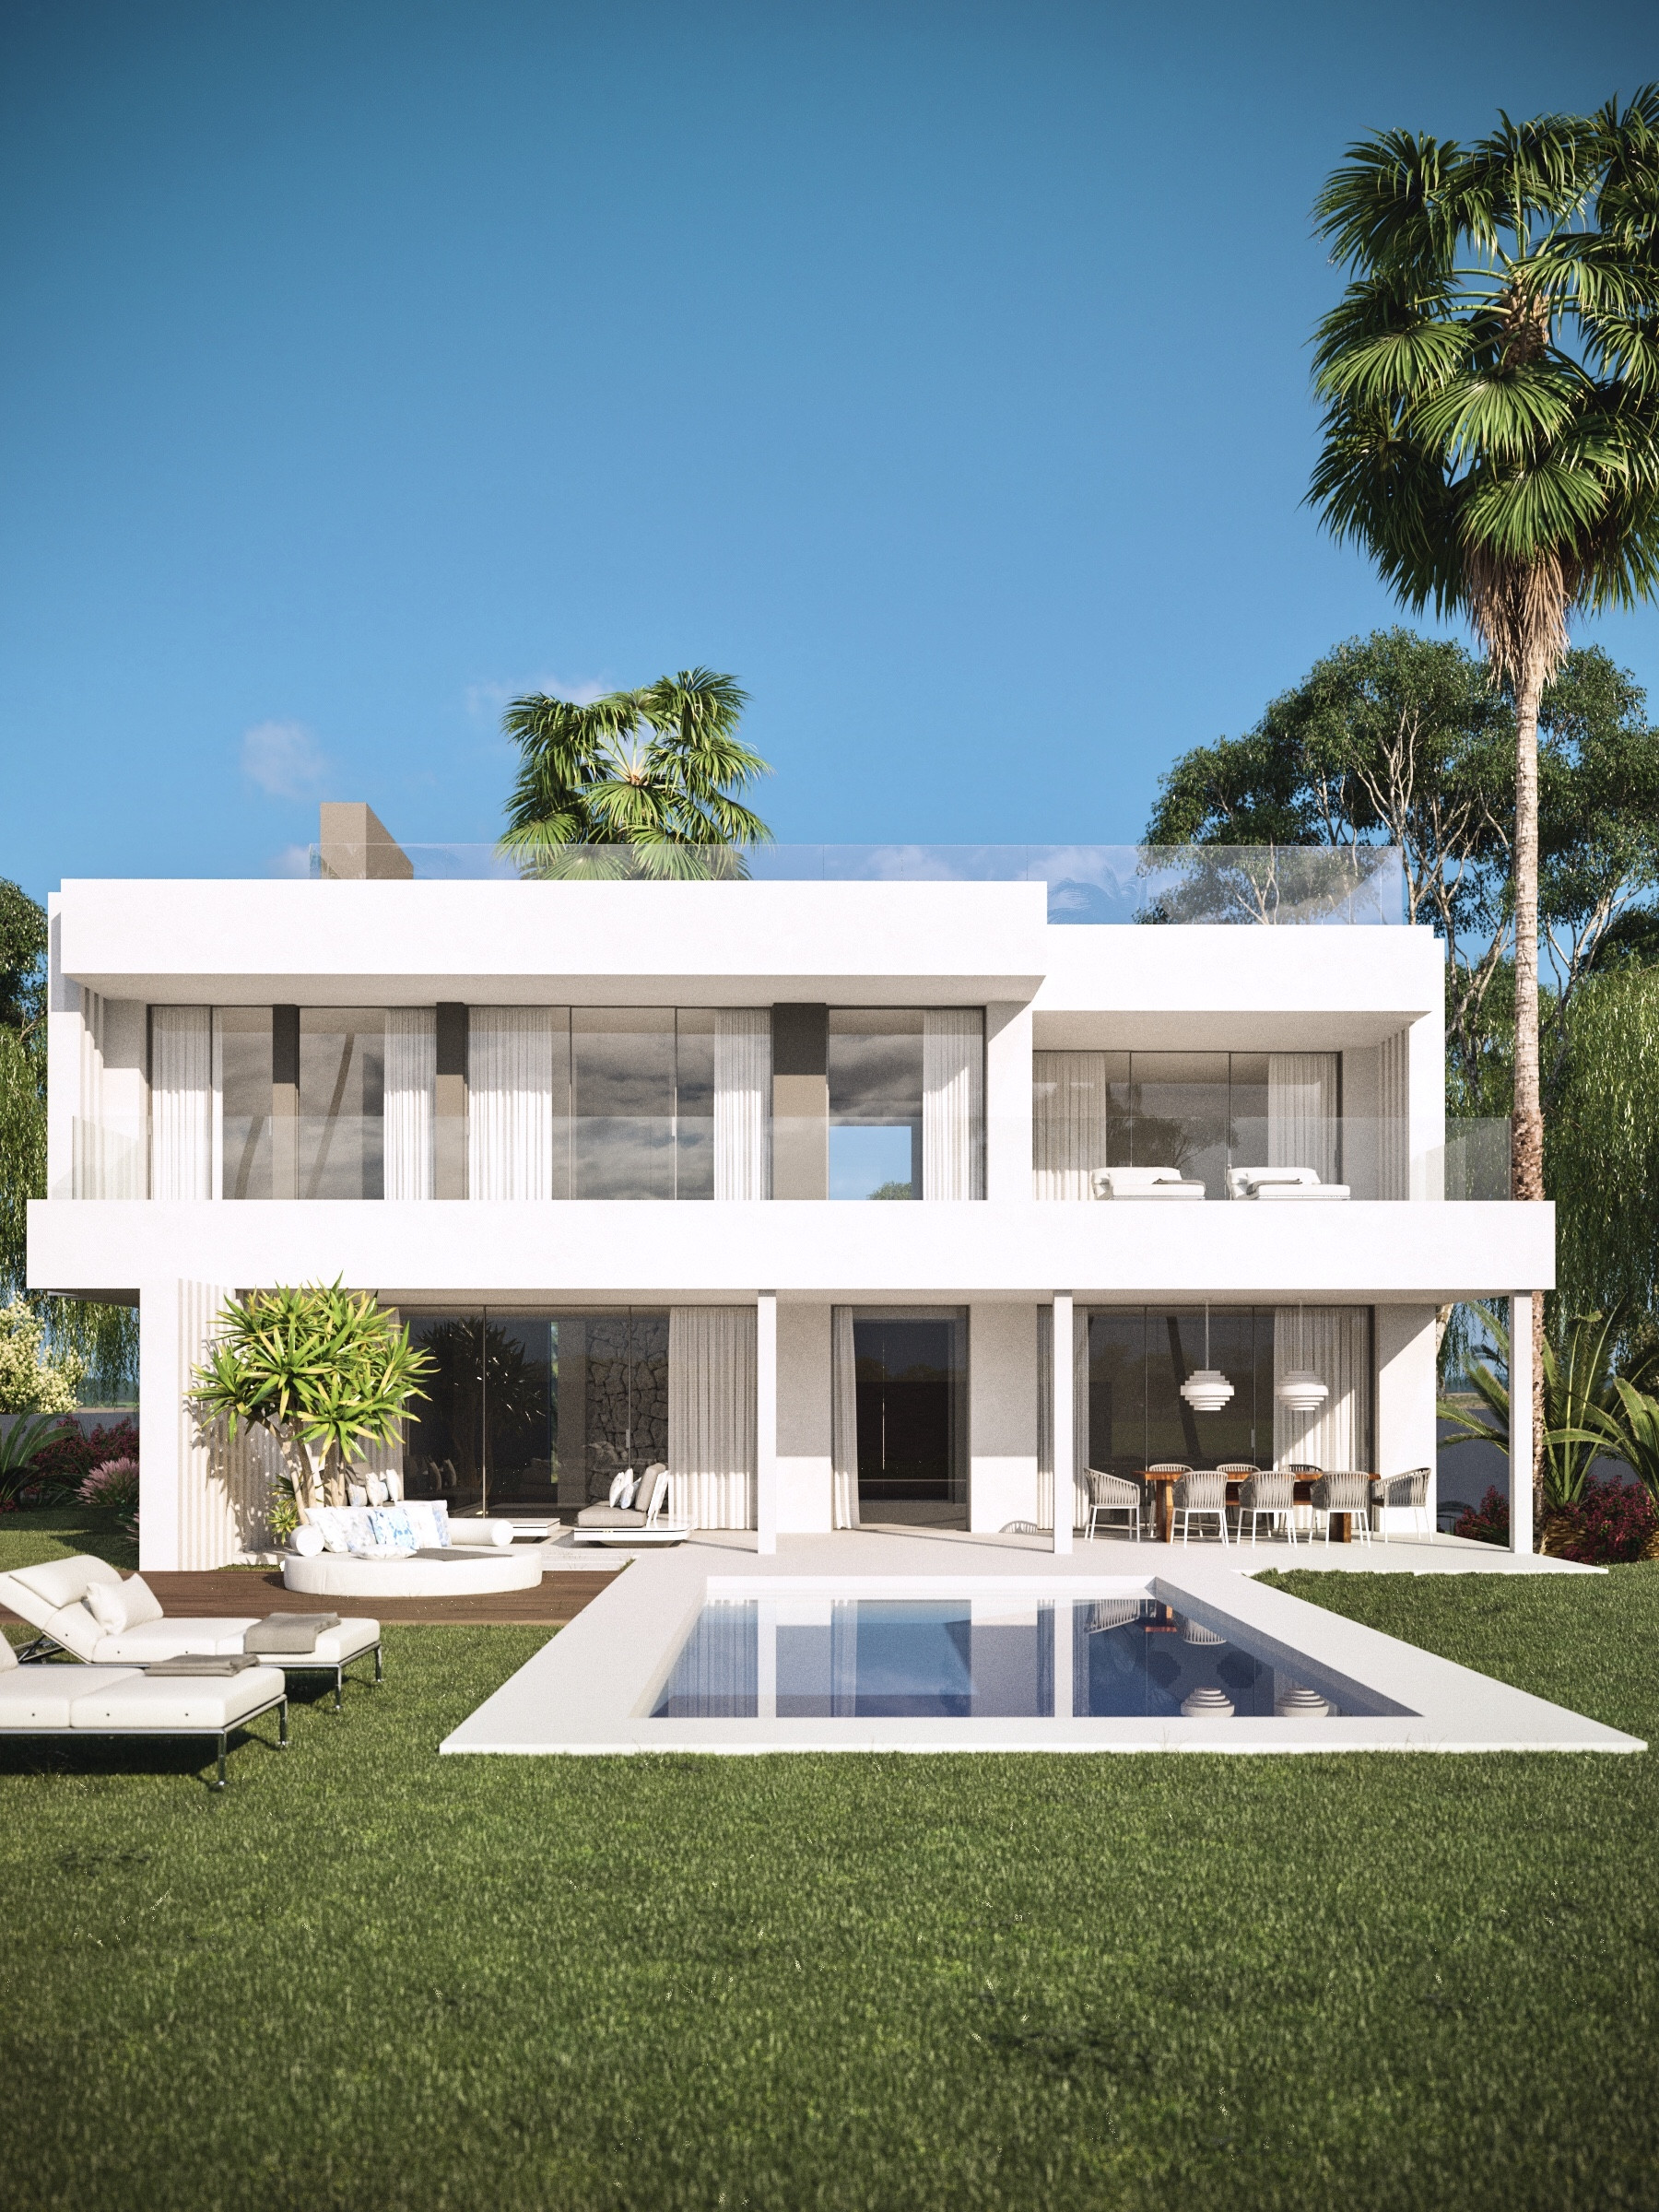 A development of contemporary villas for sale with excellent sea views in Estepona